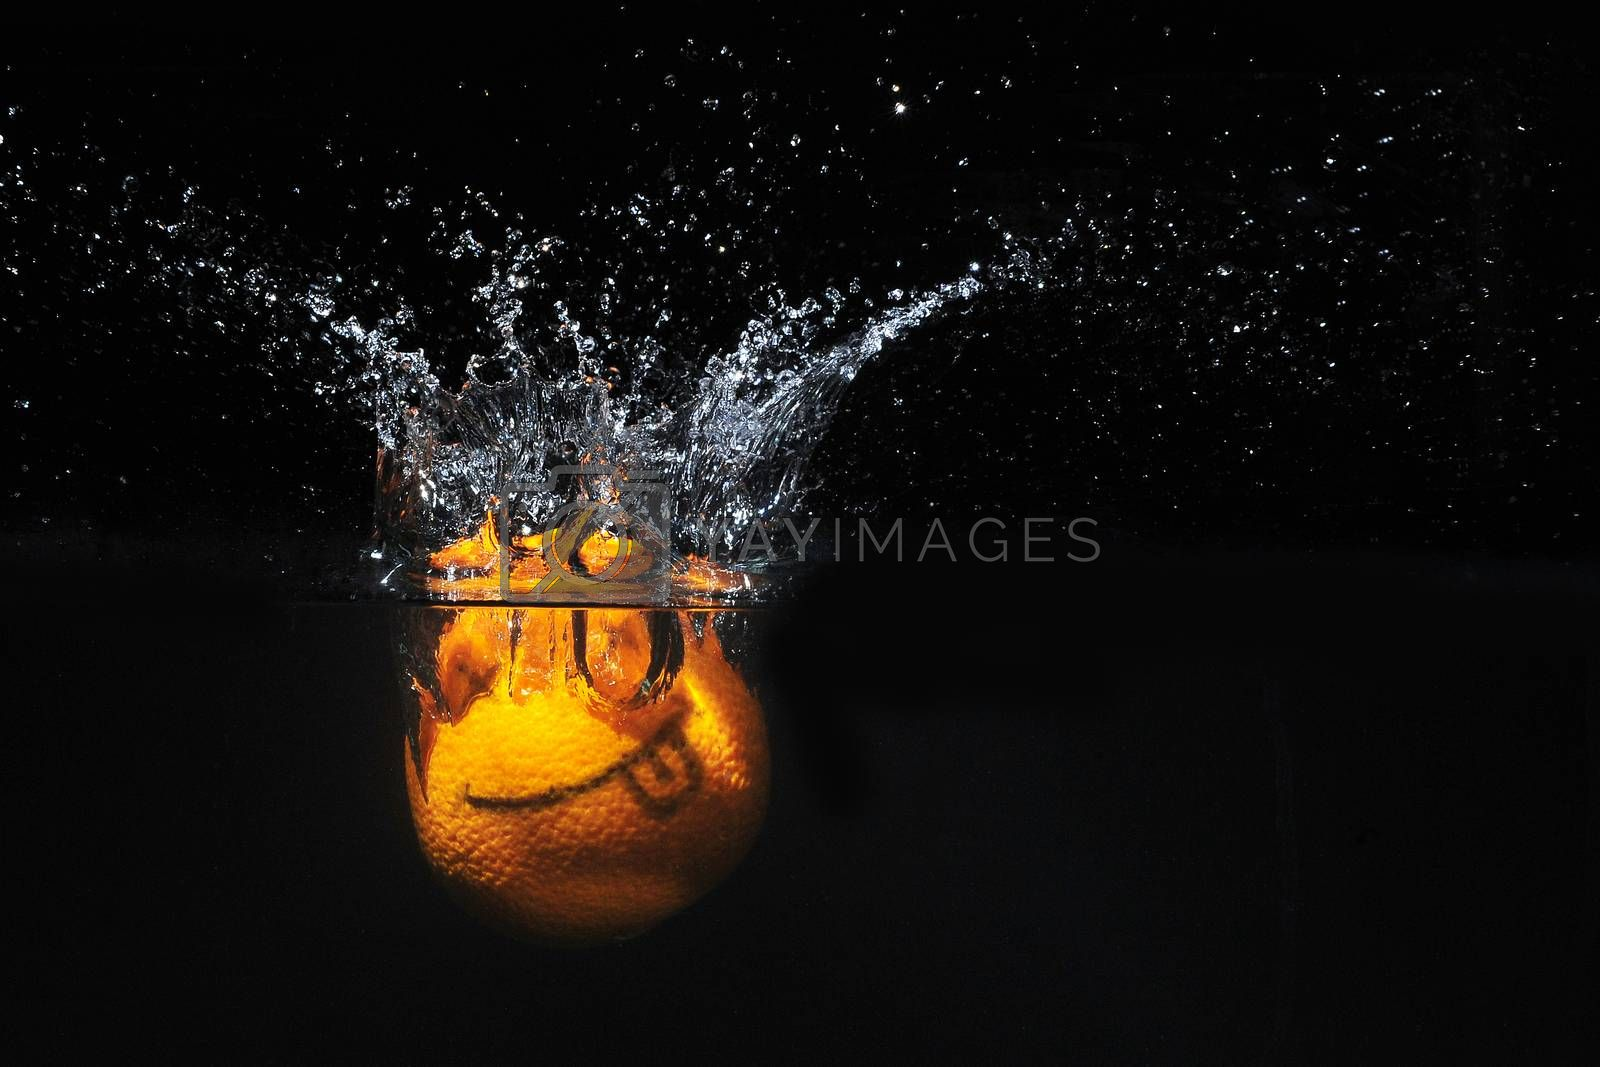 Smile orange with splashes of water on a black background by Surasak